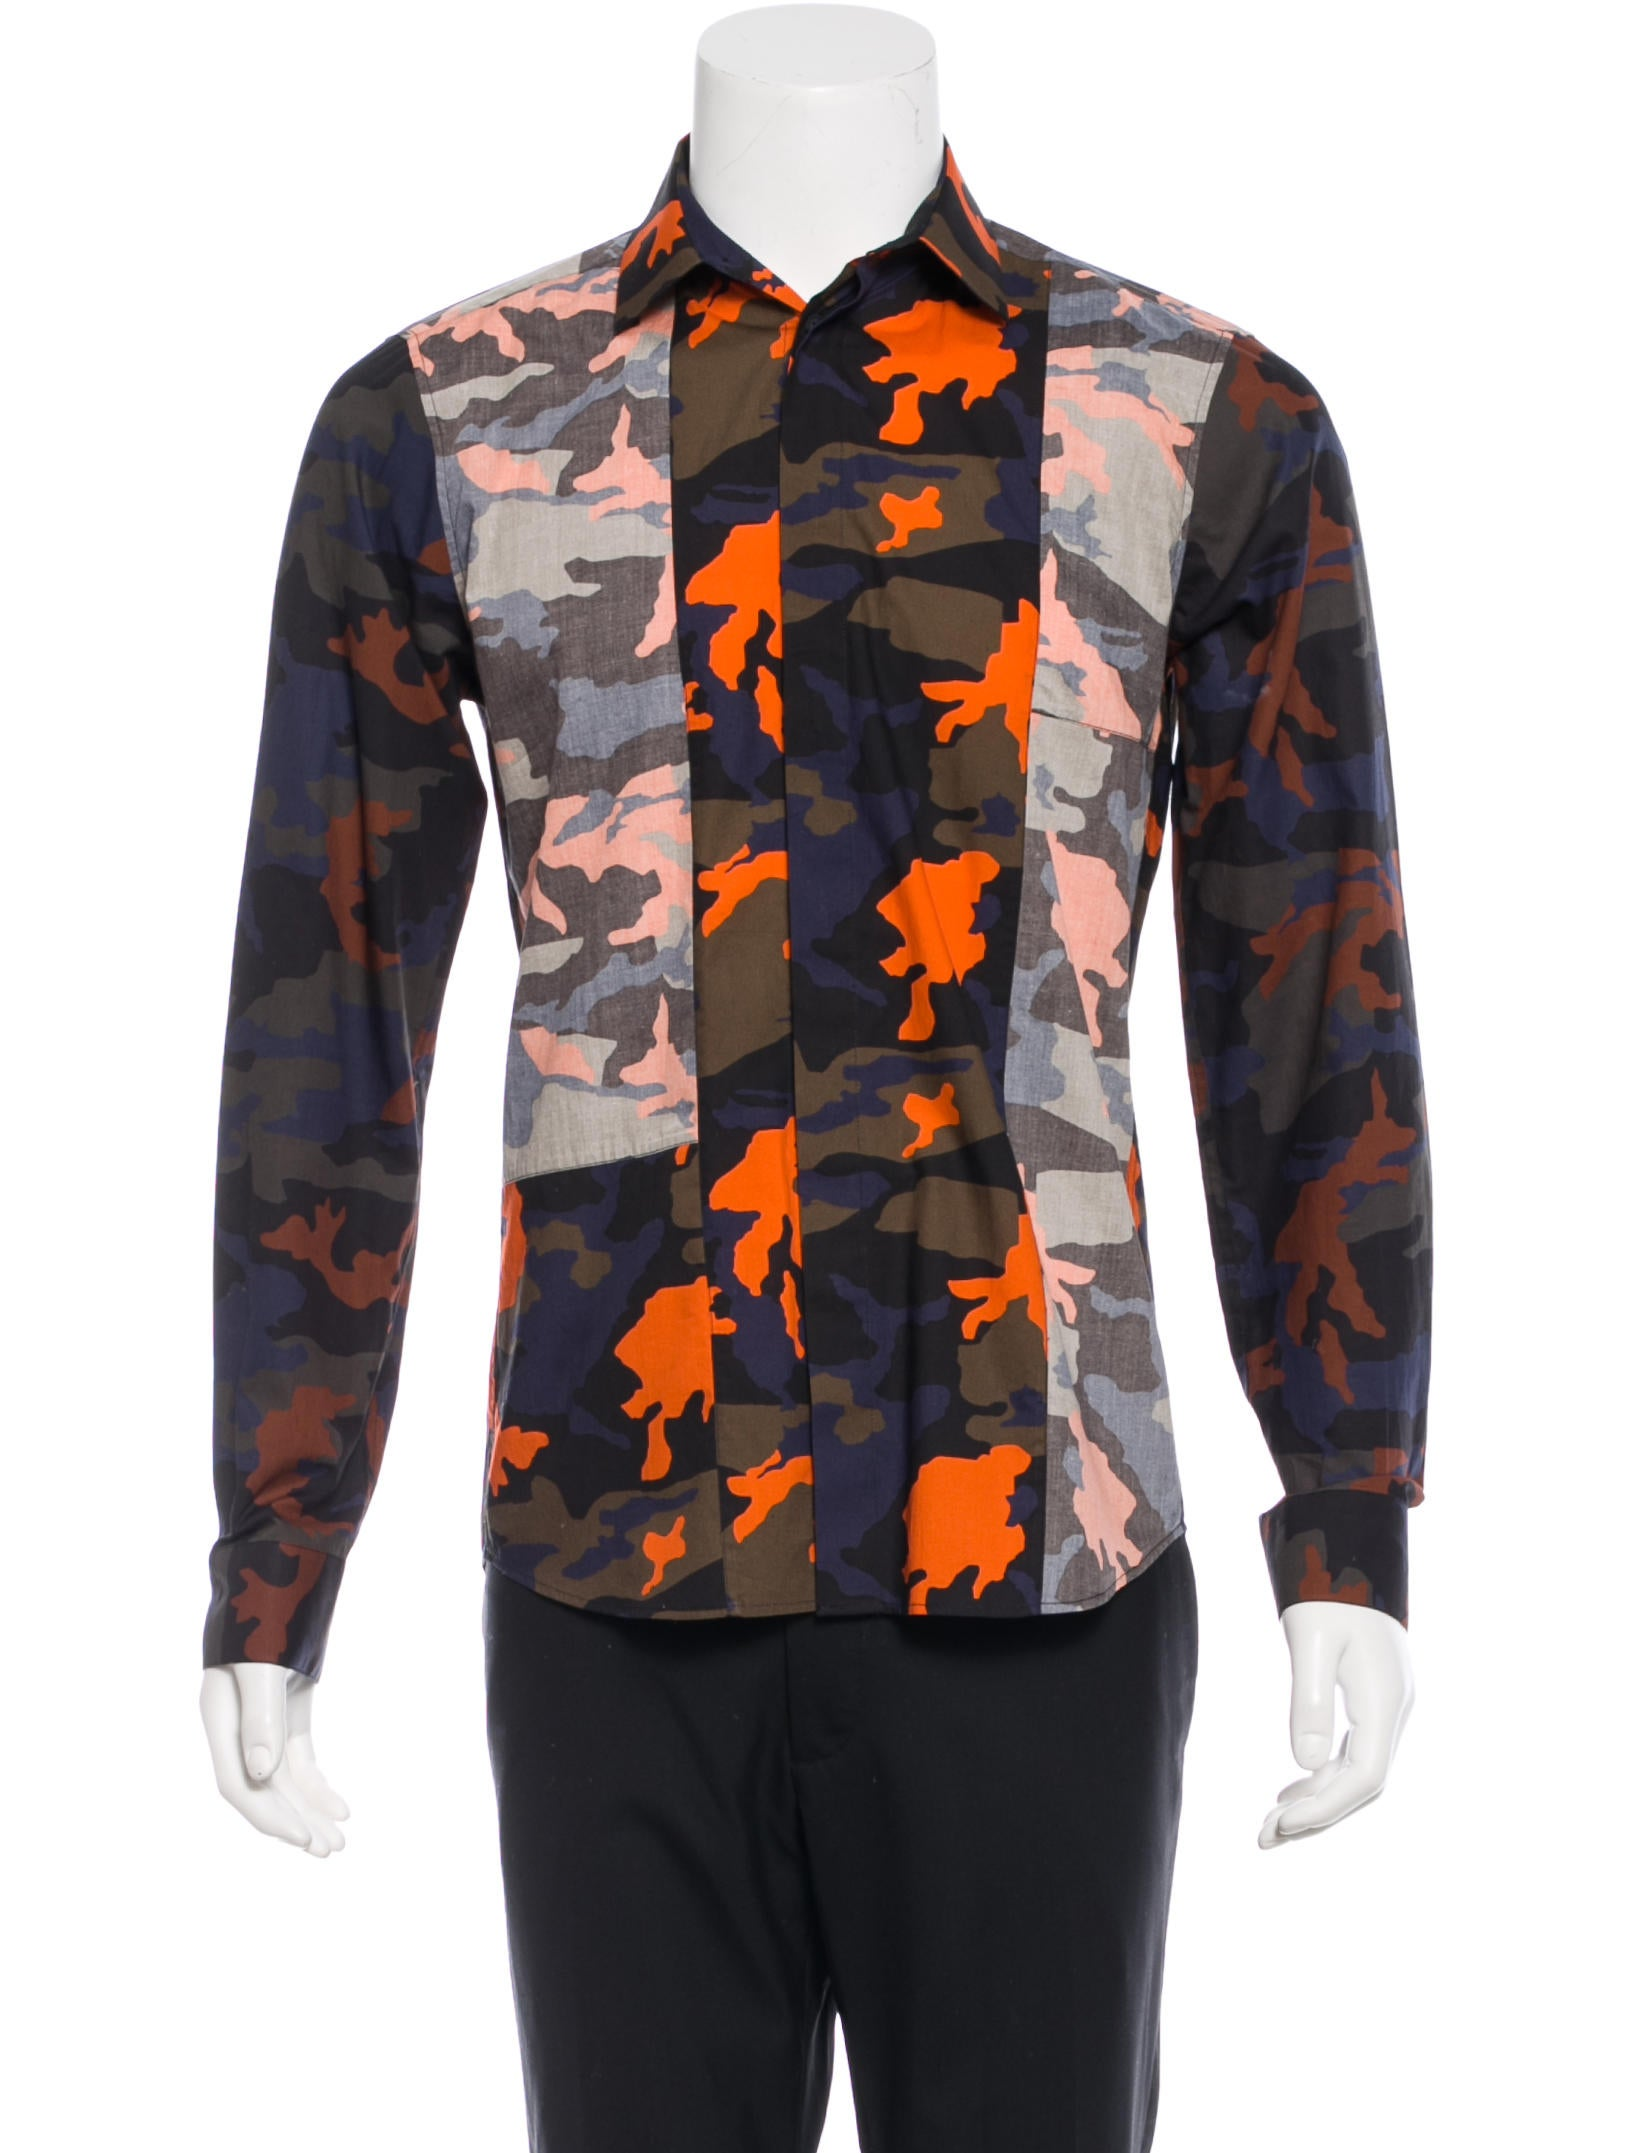 Givenchy Camouflage Button Up Shirt Clothing Giv27901